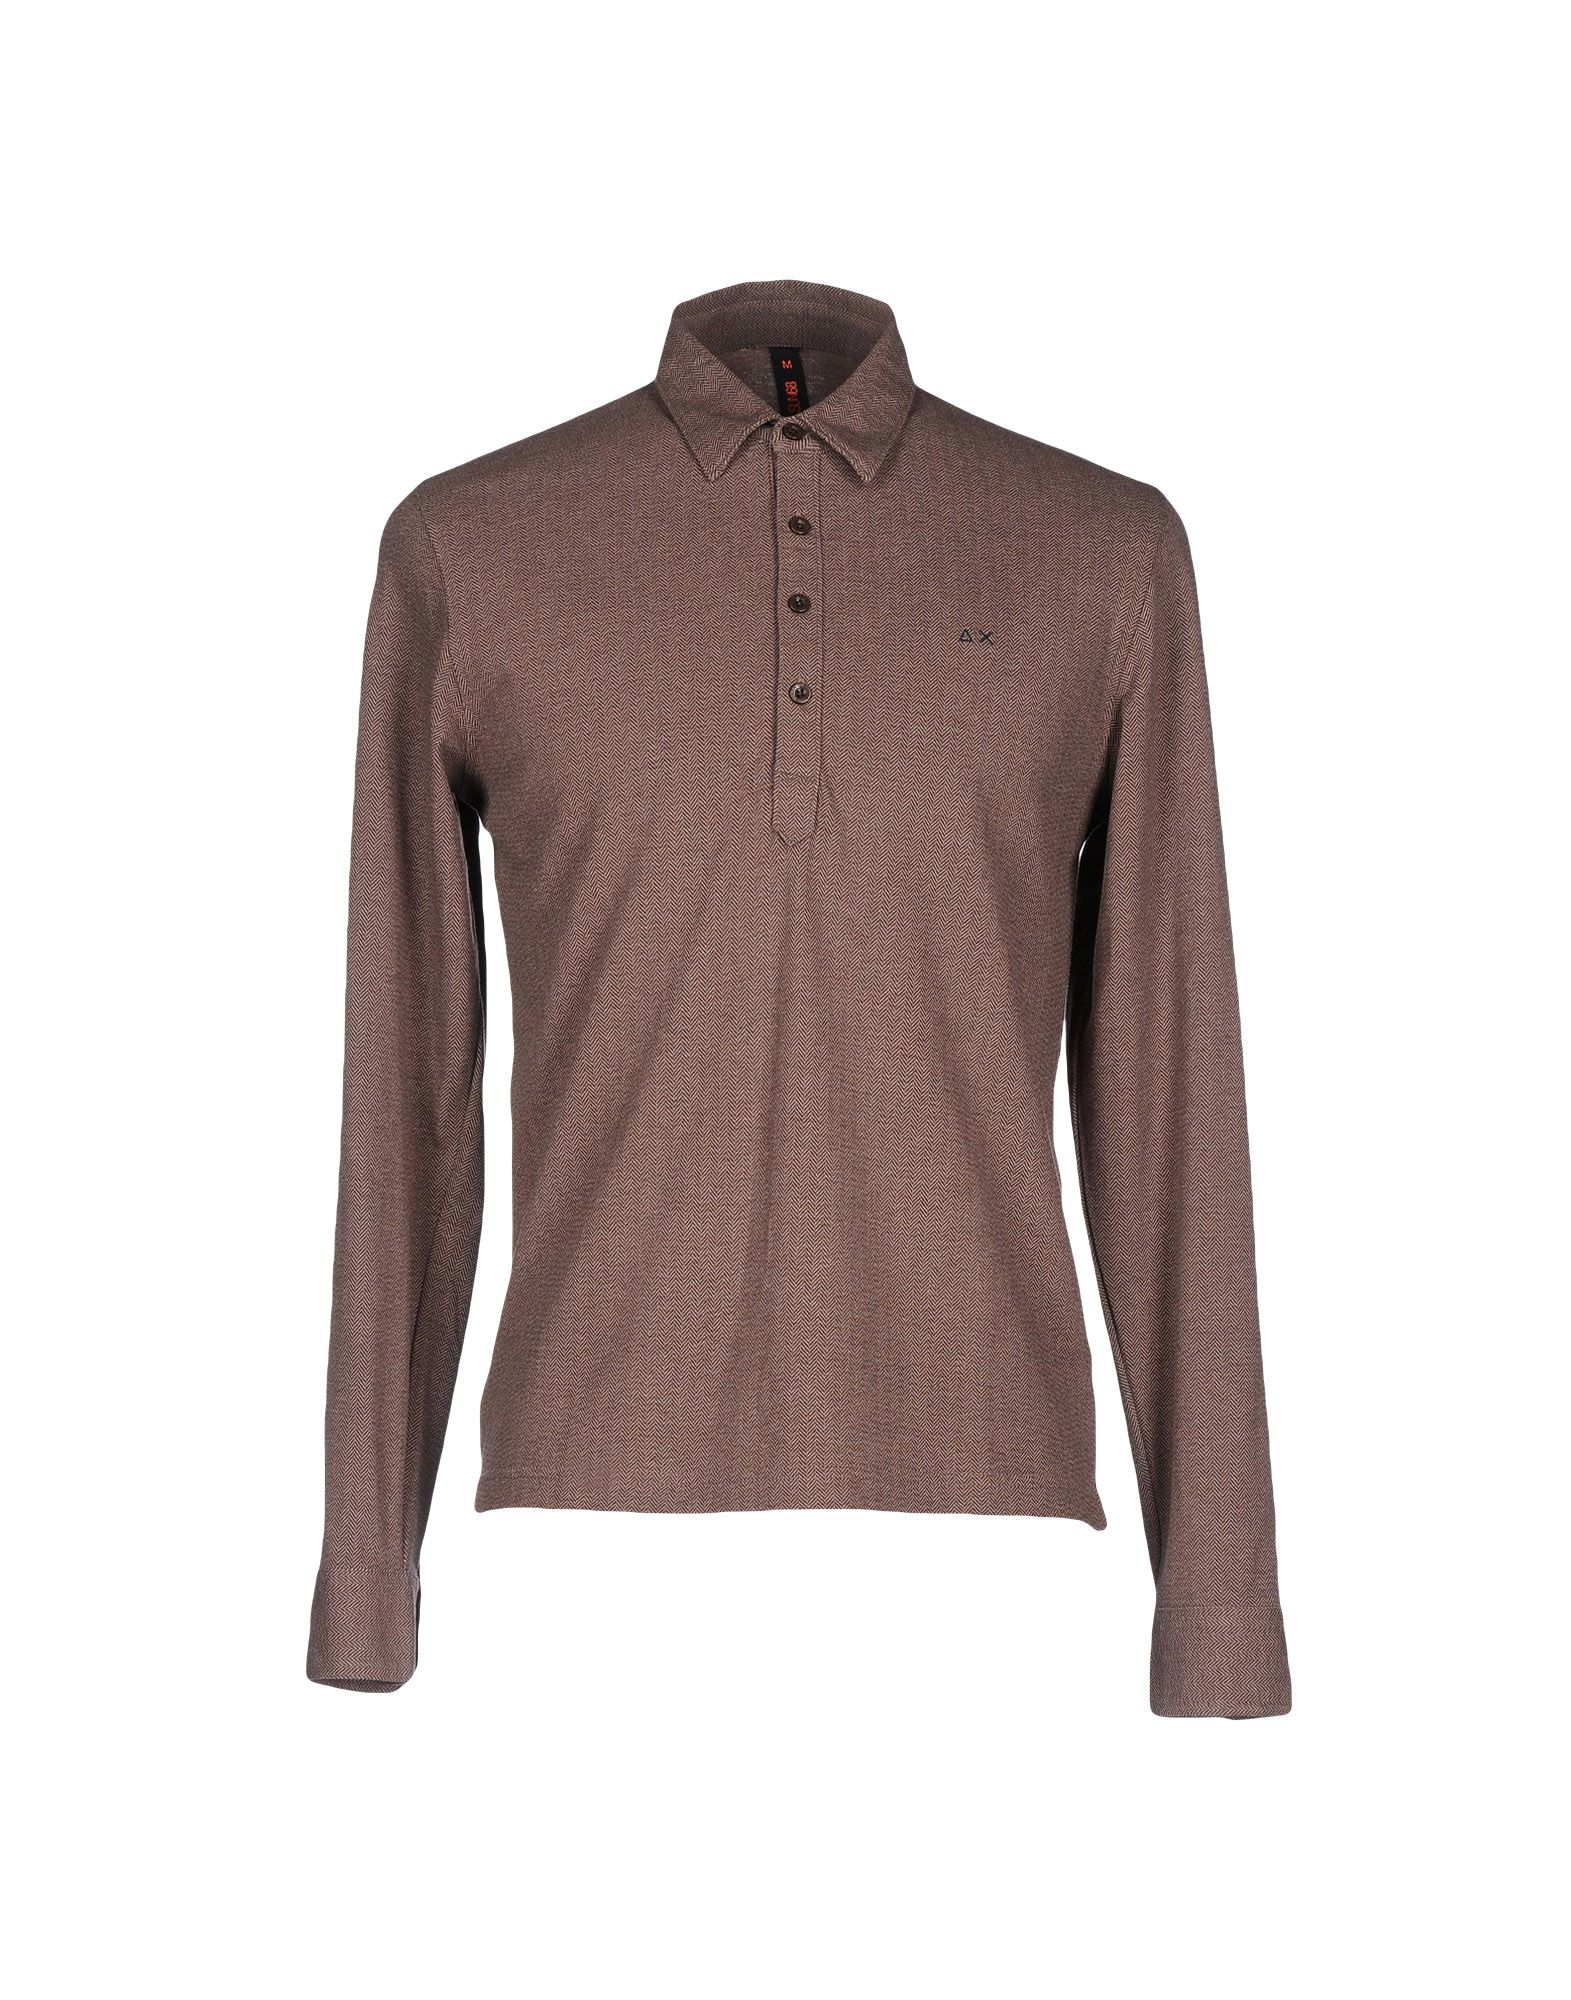 Sun 68 polo shirt in brown for men lyst for Light brown polo shirt